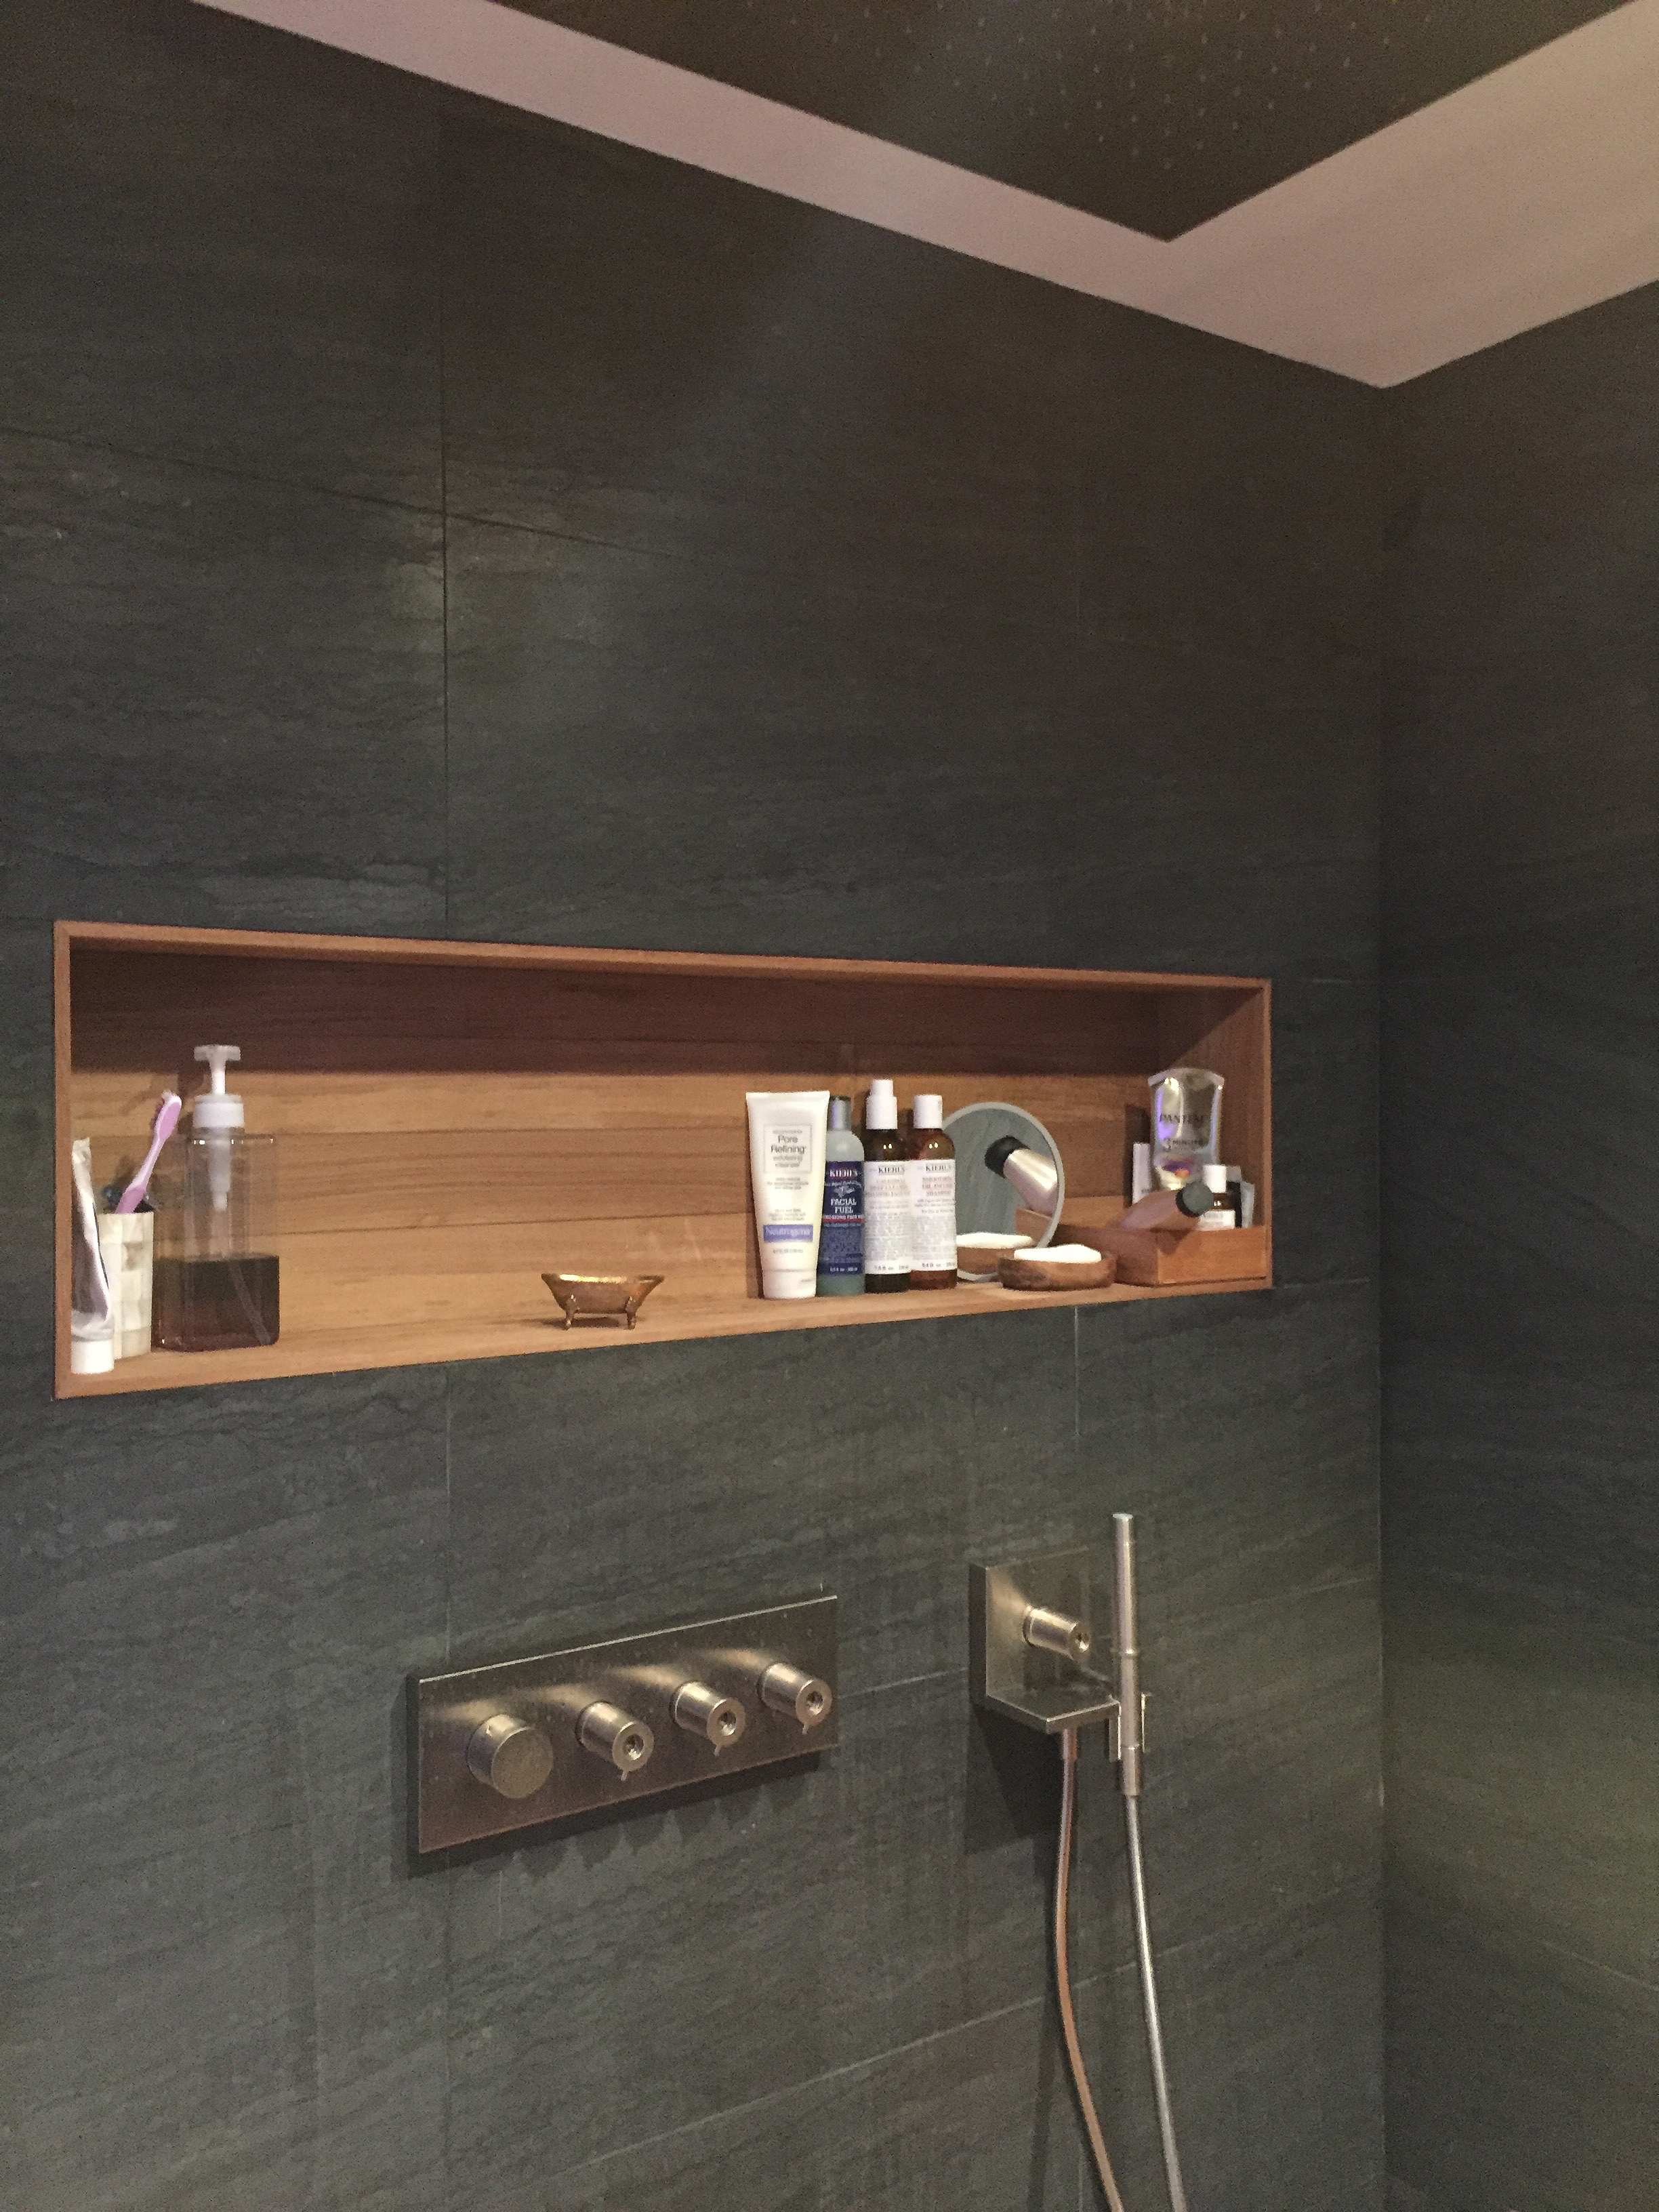 The same shower as above, here showing the  Axor Starck Heaven ceiling mounted rain head  and its many controls. Its a doozy. A teak wall nook holds all the soaps, complementing the teak shower floor and the brushed nickel fixtures.